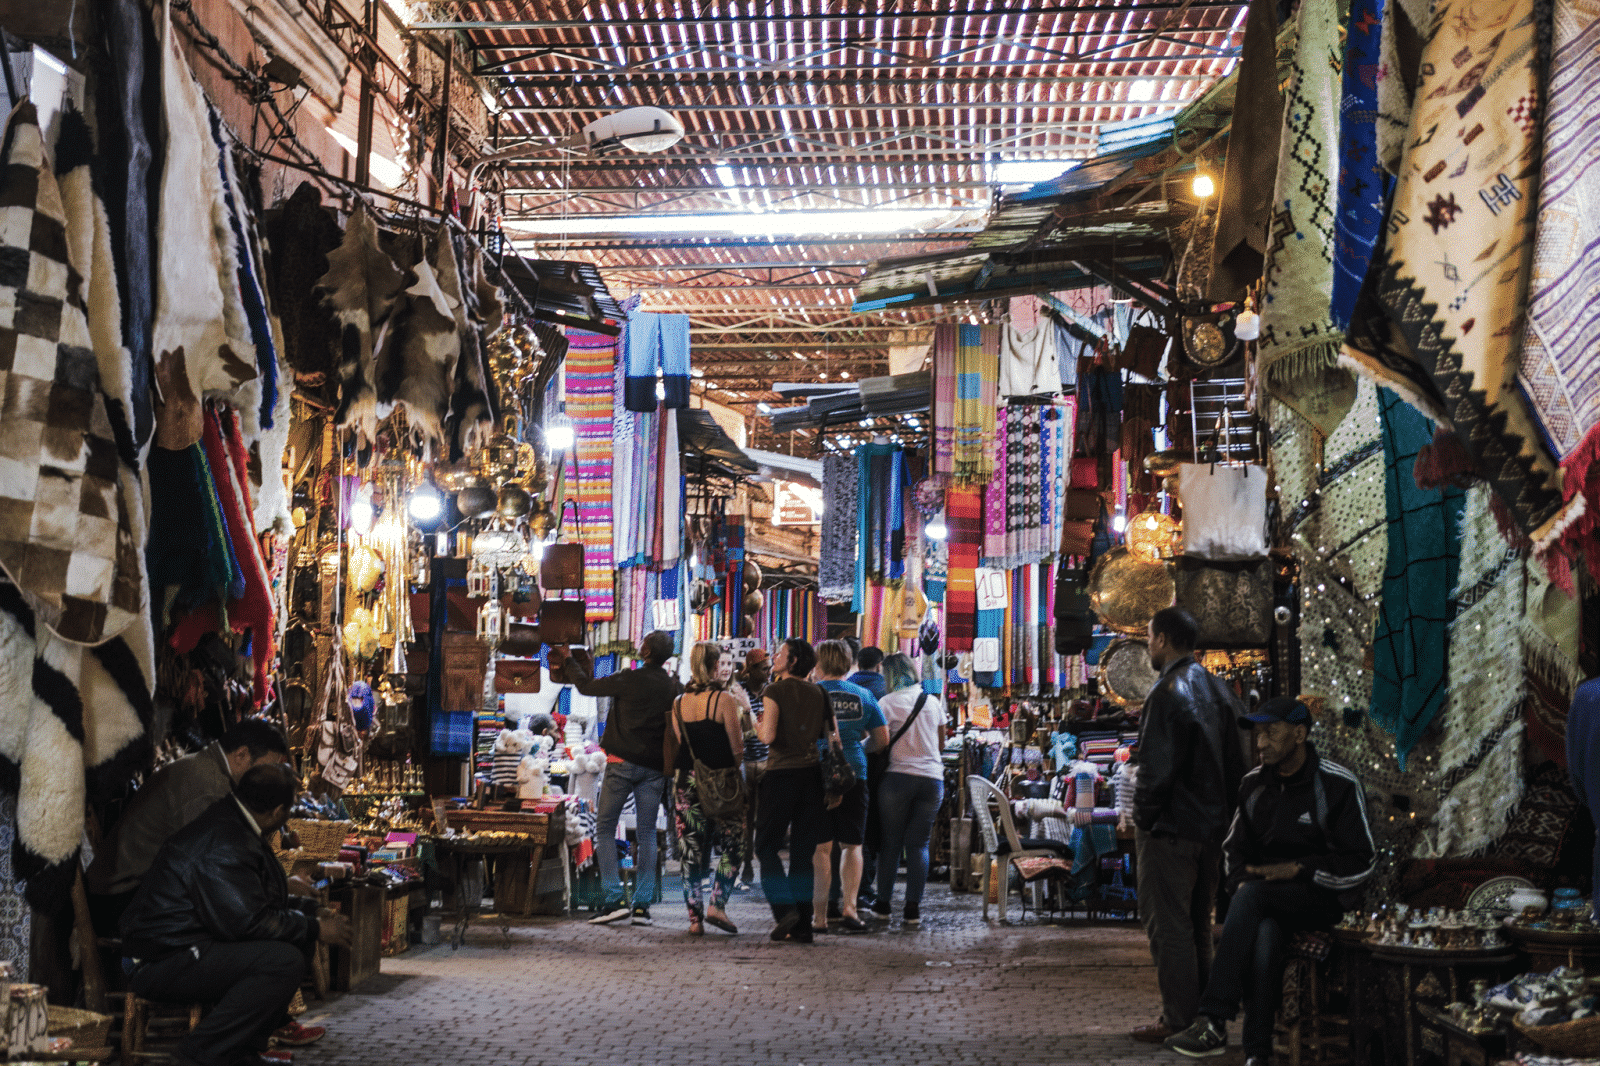 Trips to Marrakech - the souks